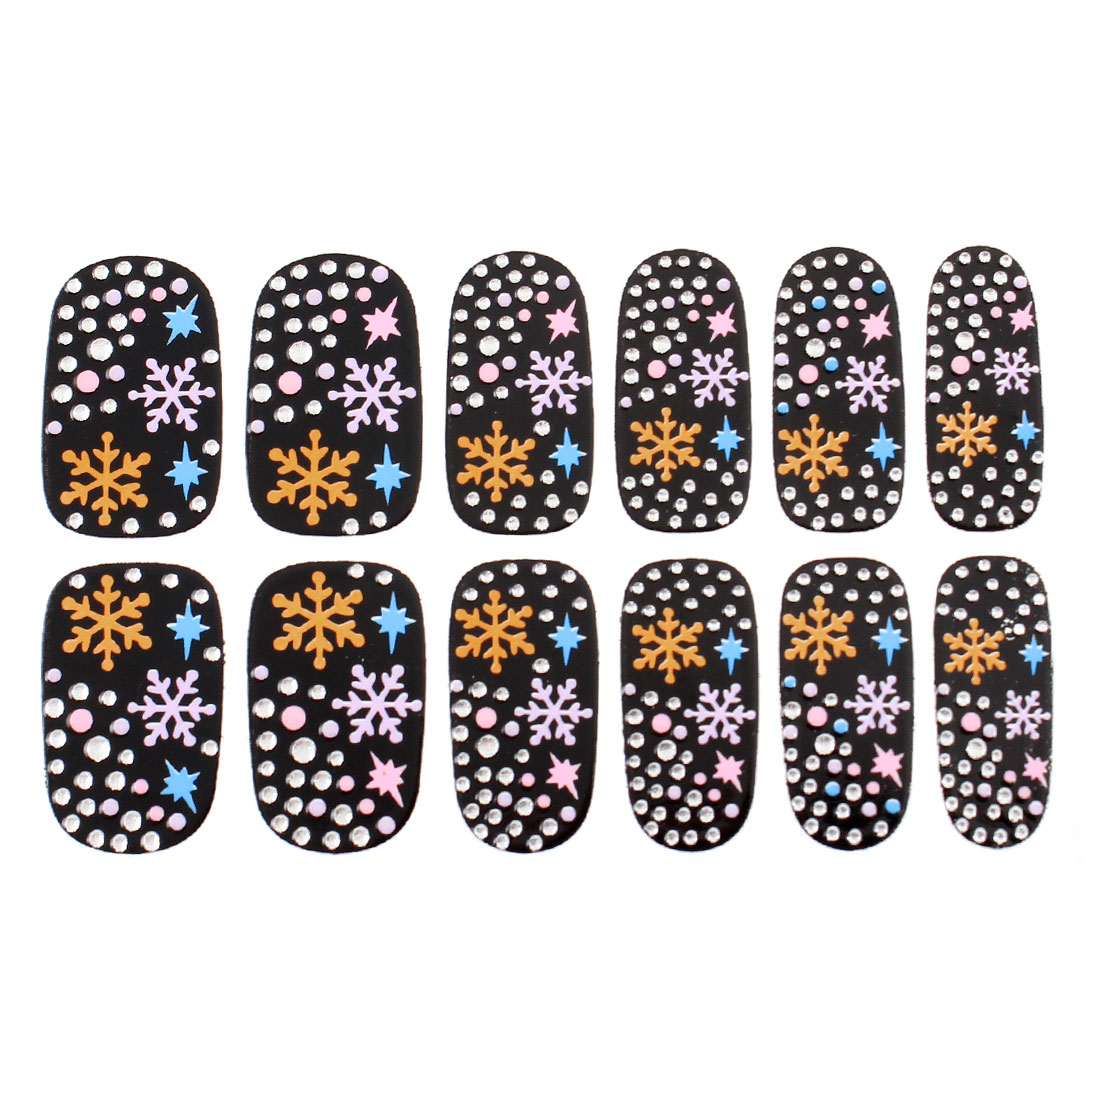 Pueple Yellow Snow Flake Pattern Nail Wrap Foils Self Adhesive Art Sticker 12 Pcs Black